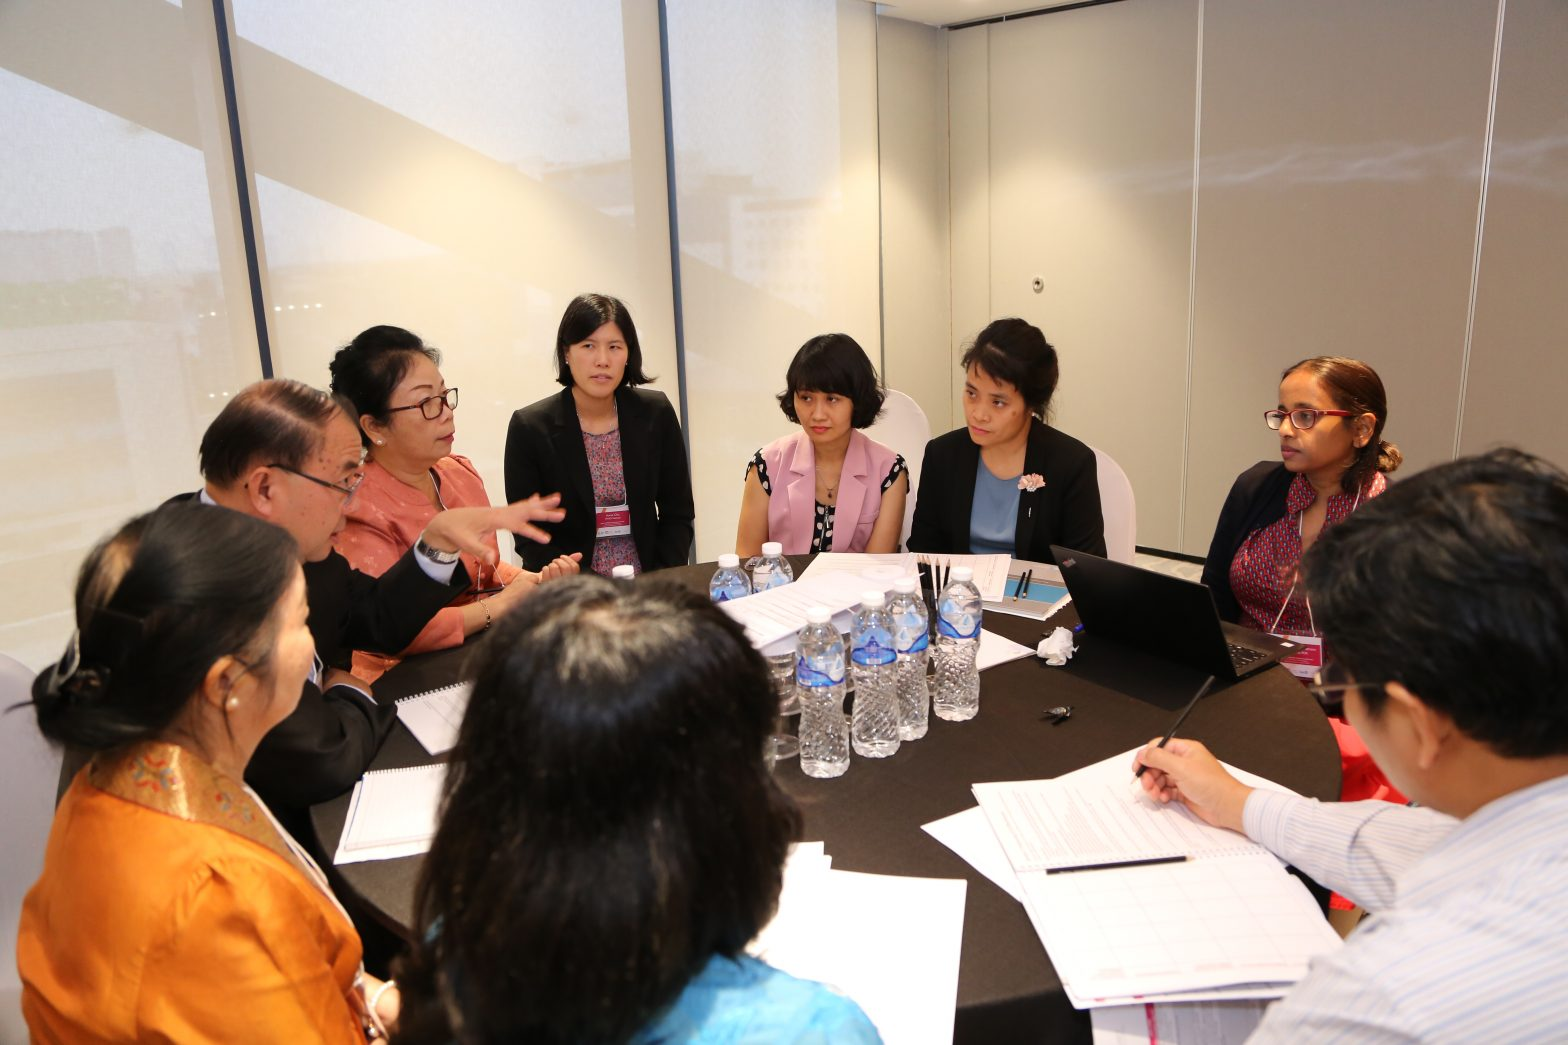 Health policy and research professionals from the Asia region discuss process improvements at a roundtable